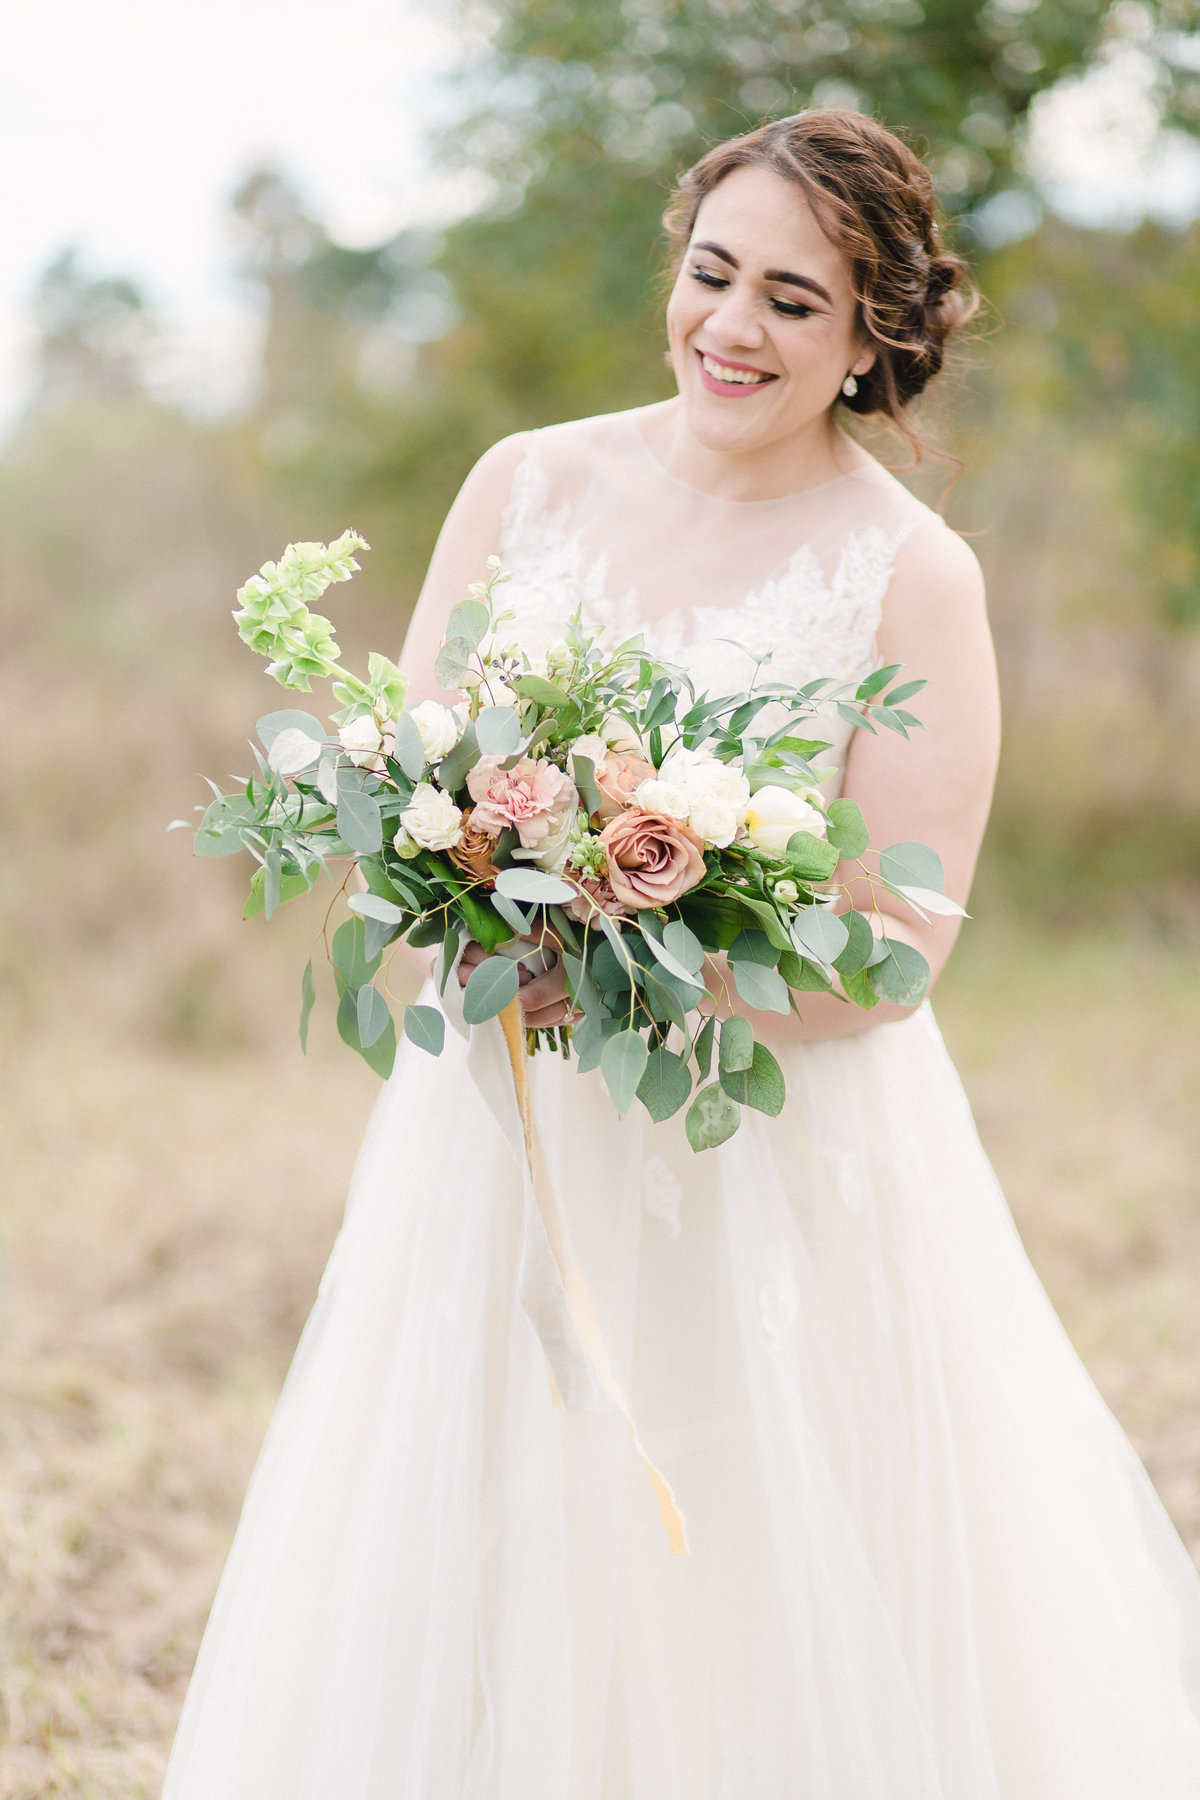 The-woodlands-bridal-session-alicia-yarrish-photography-33